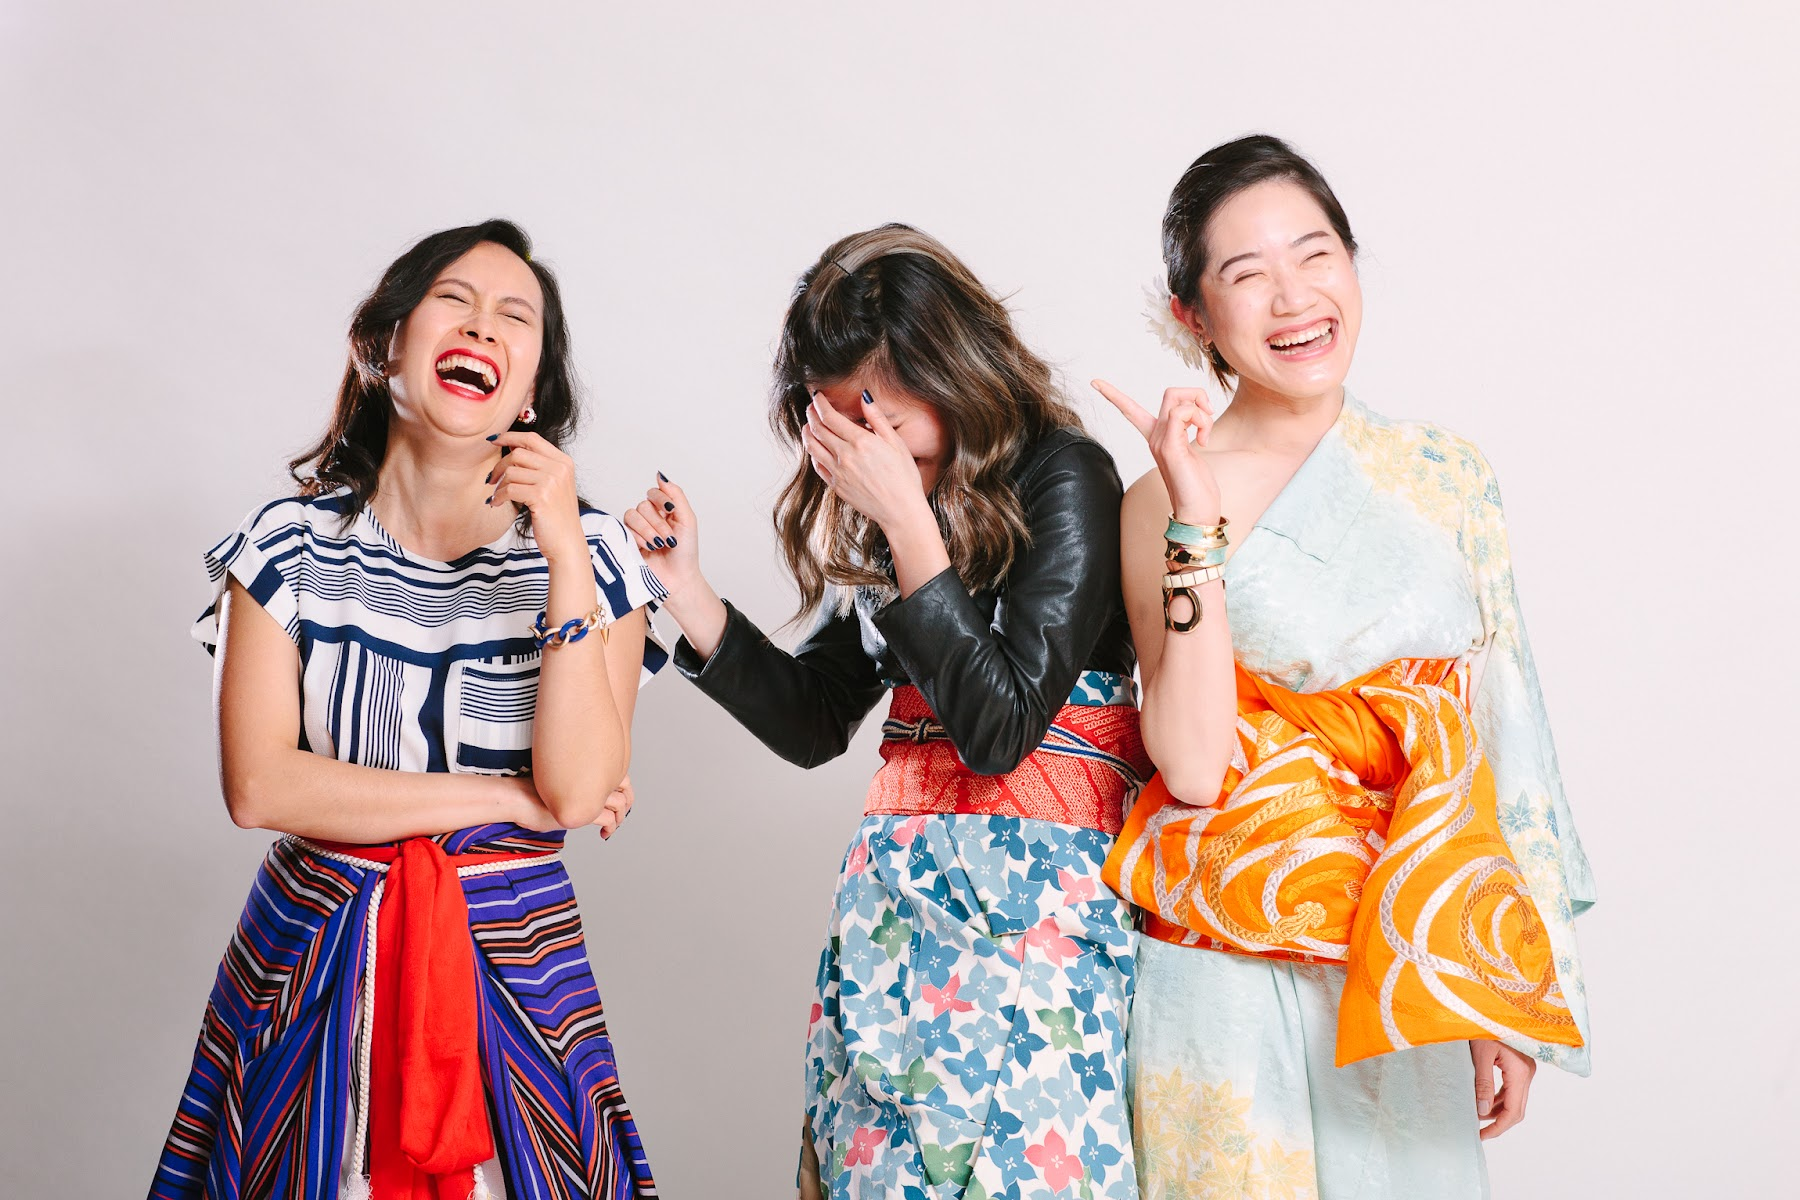 Vero, Audrey, Michelle at Kimono Styling Party - FAFAFOOM.com